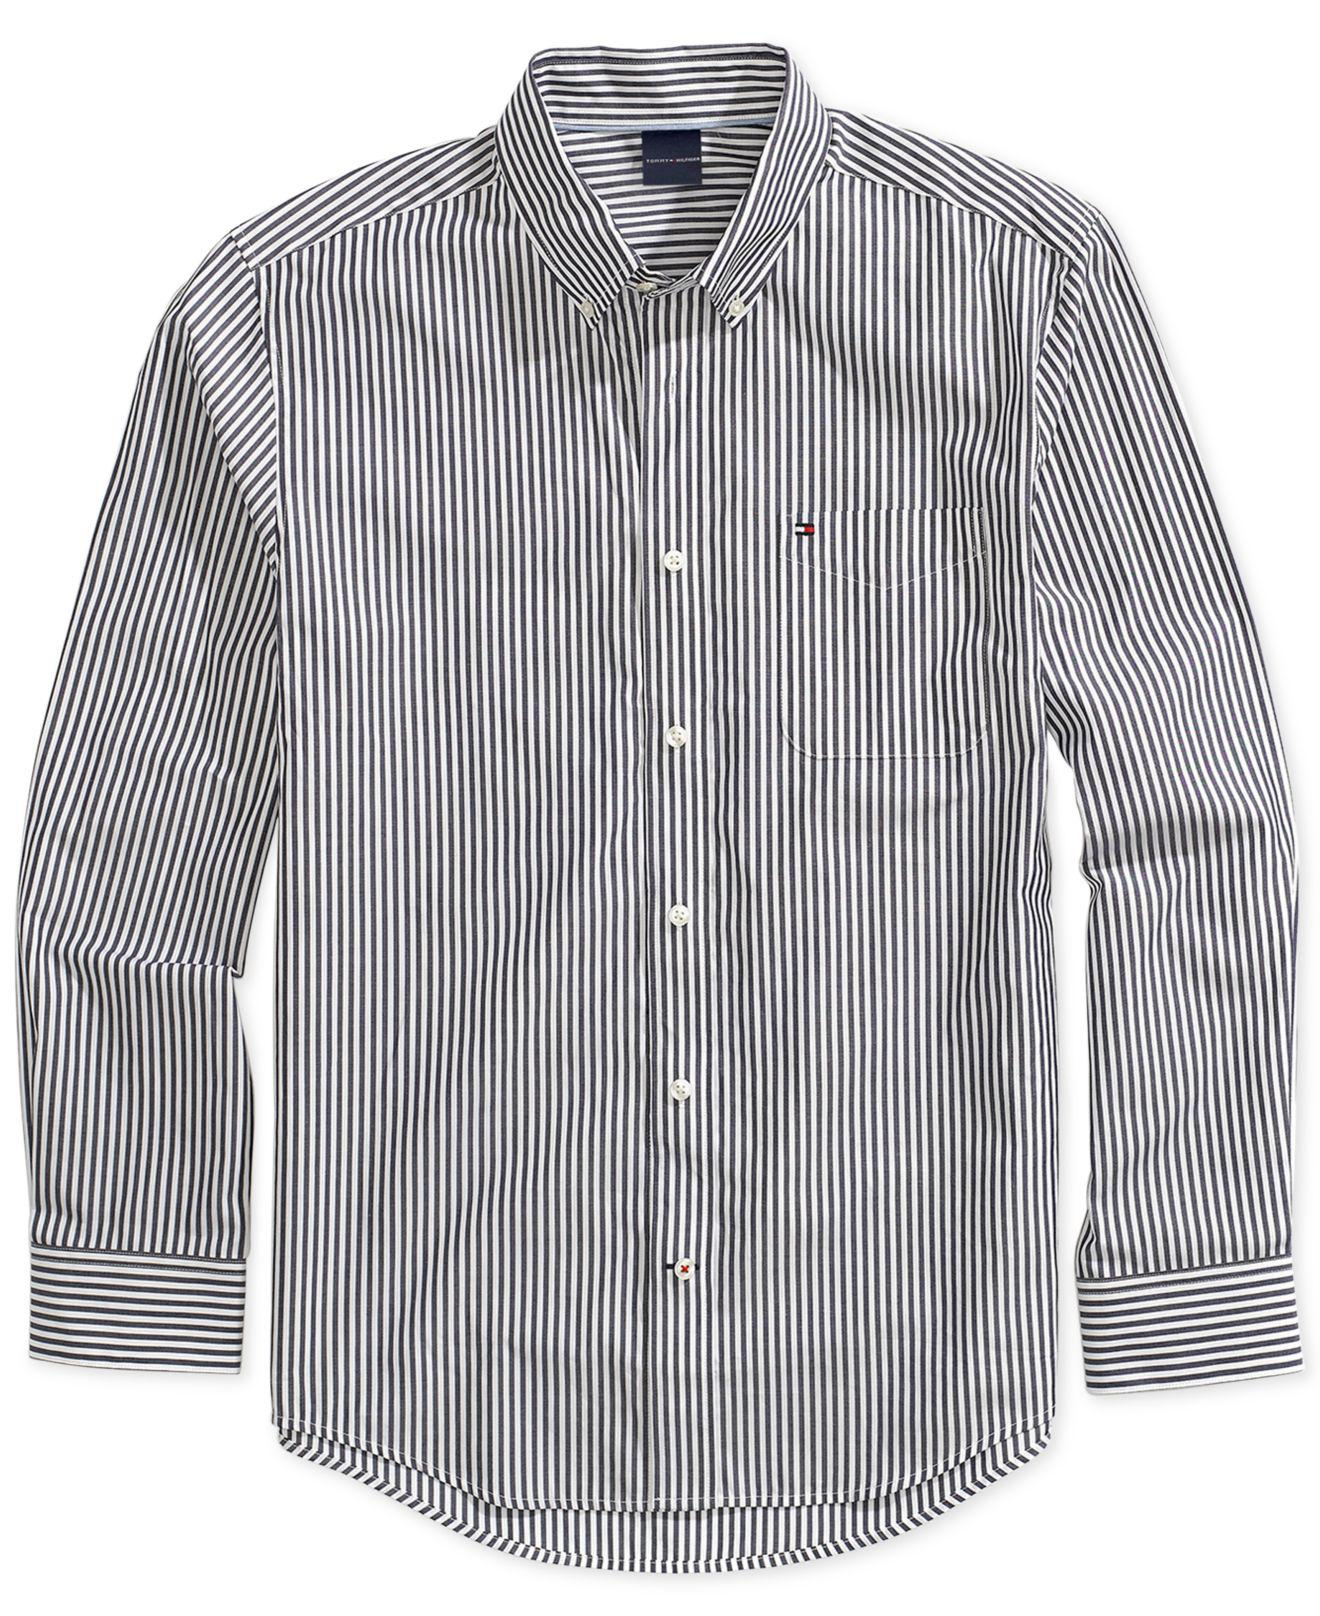 d91ec8a5 Lyst - Tommy Hilfiger Stripe Shirt With Magnetic Buttons for Men